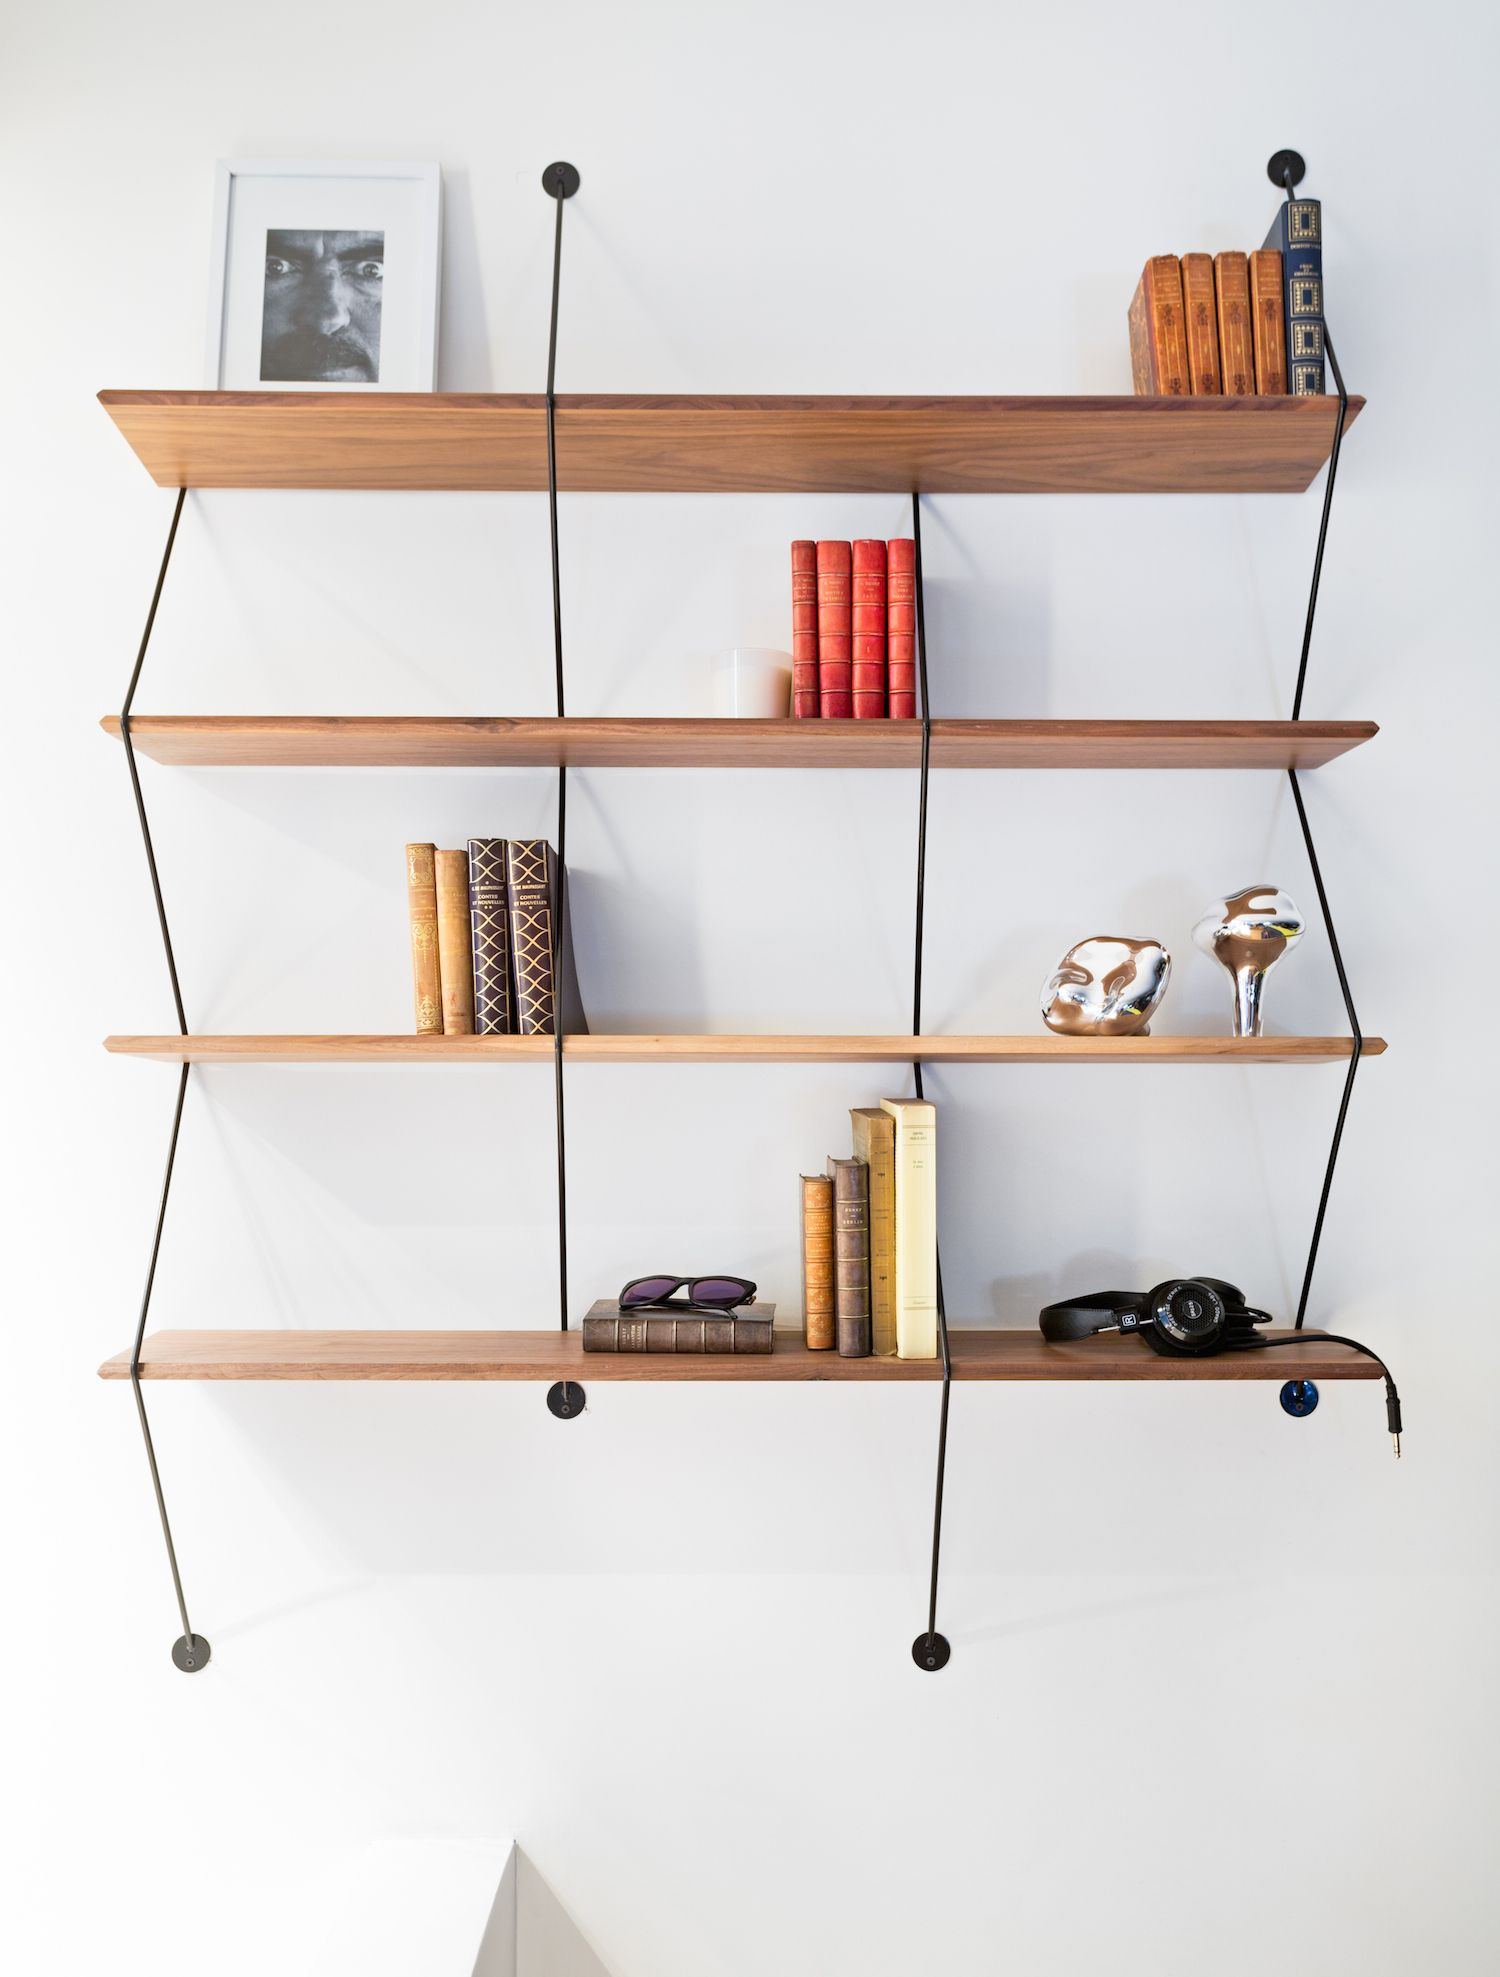 La Chance Office Showroom The Climb Shelf Holding Precious Books Photo Felix Forest Www Lachance Fr Modelos De Repisas Interiores Mobiliario